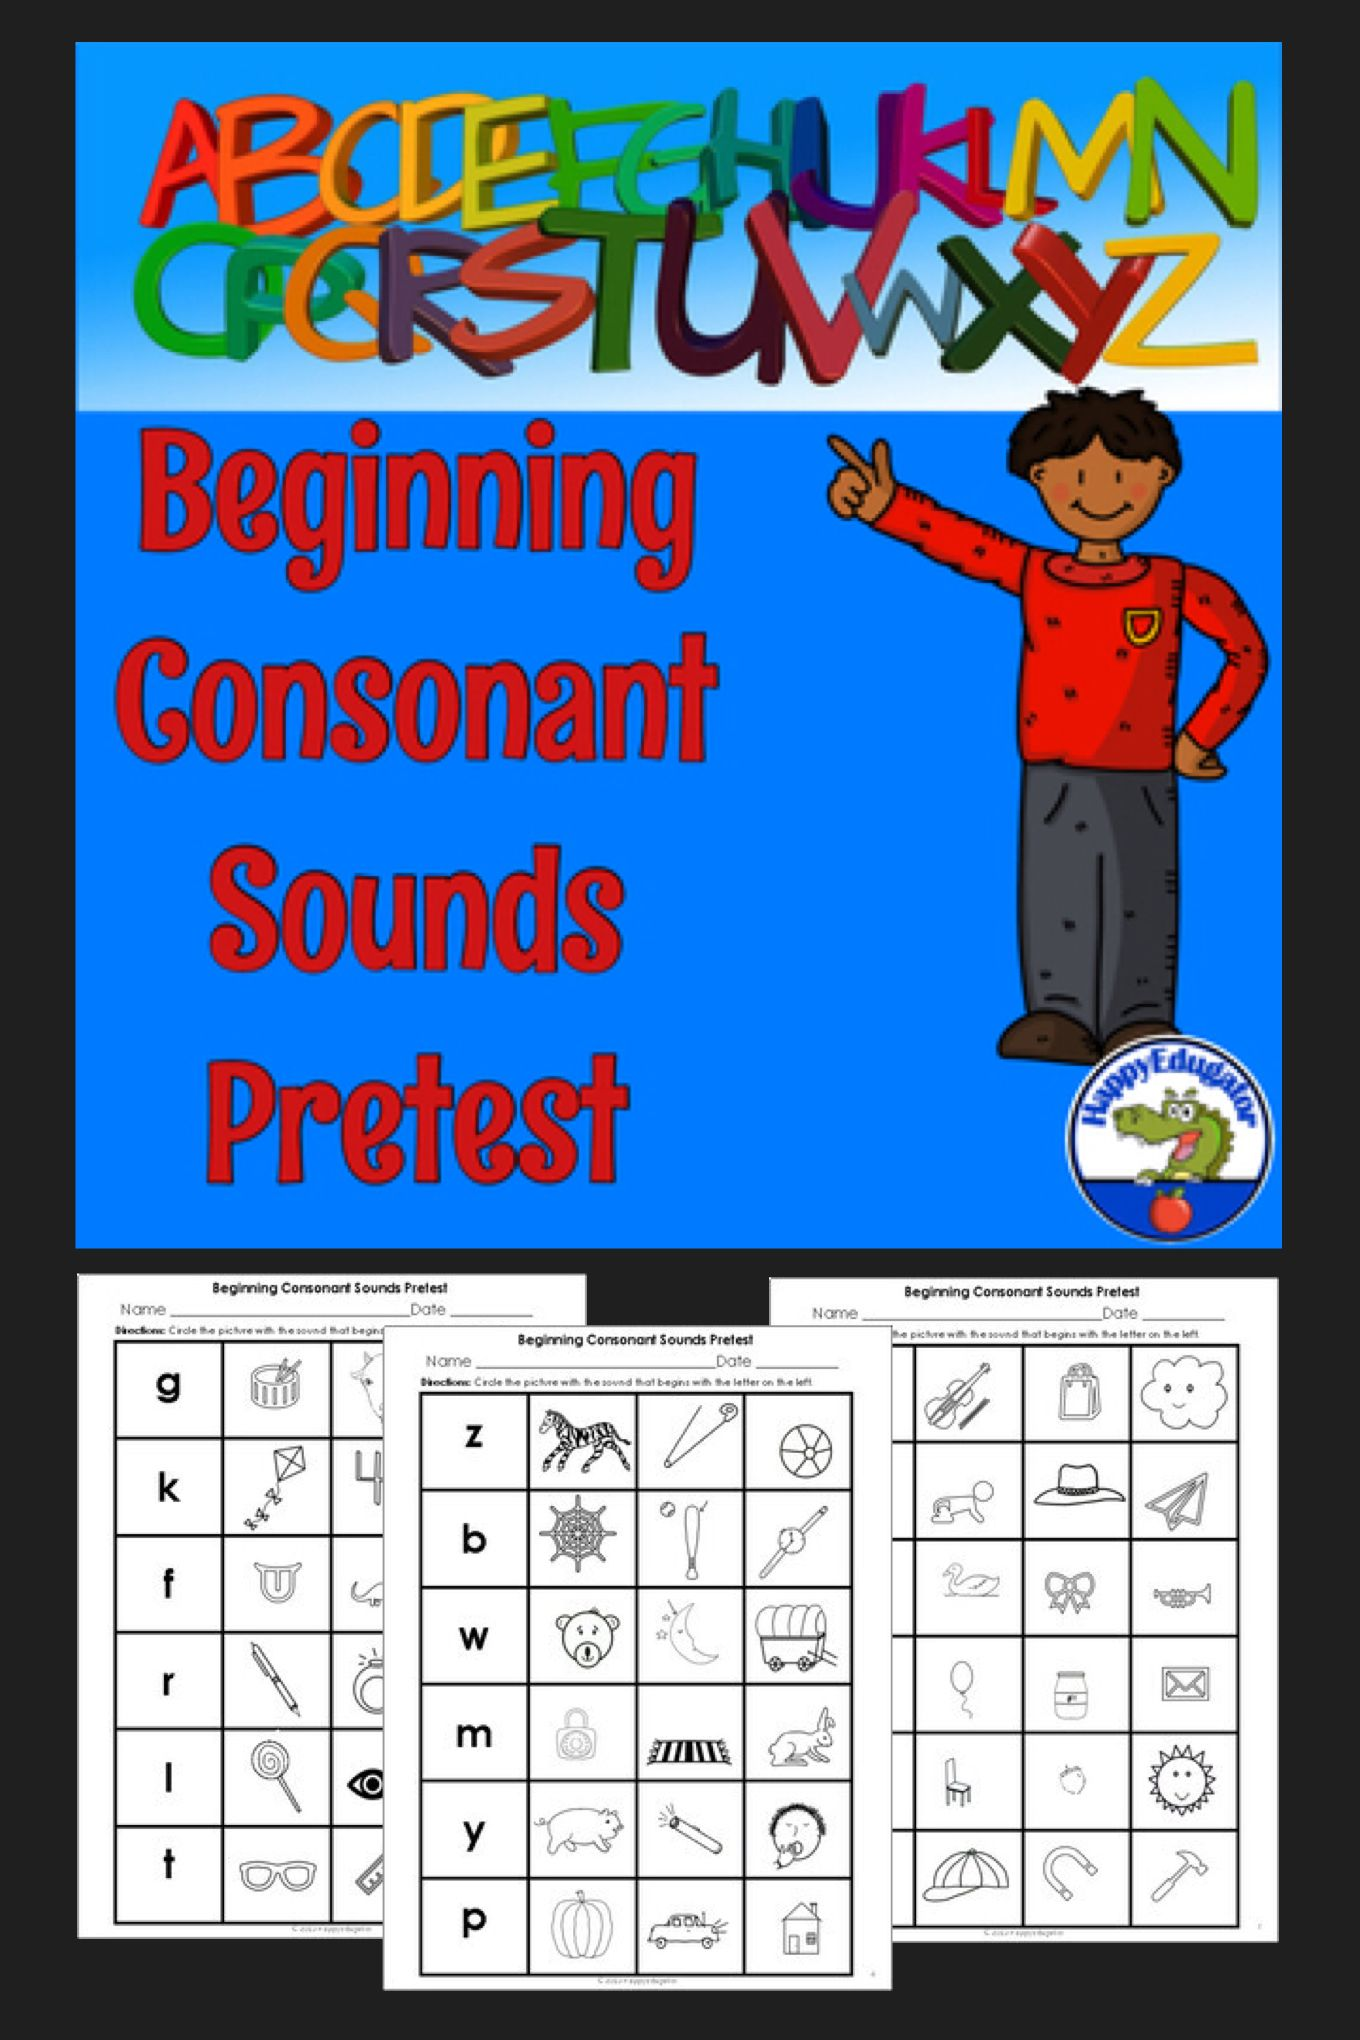 Beginning Consonant Sounds Pretest With Images